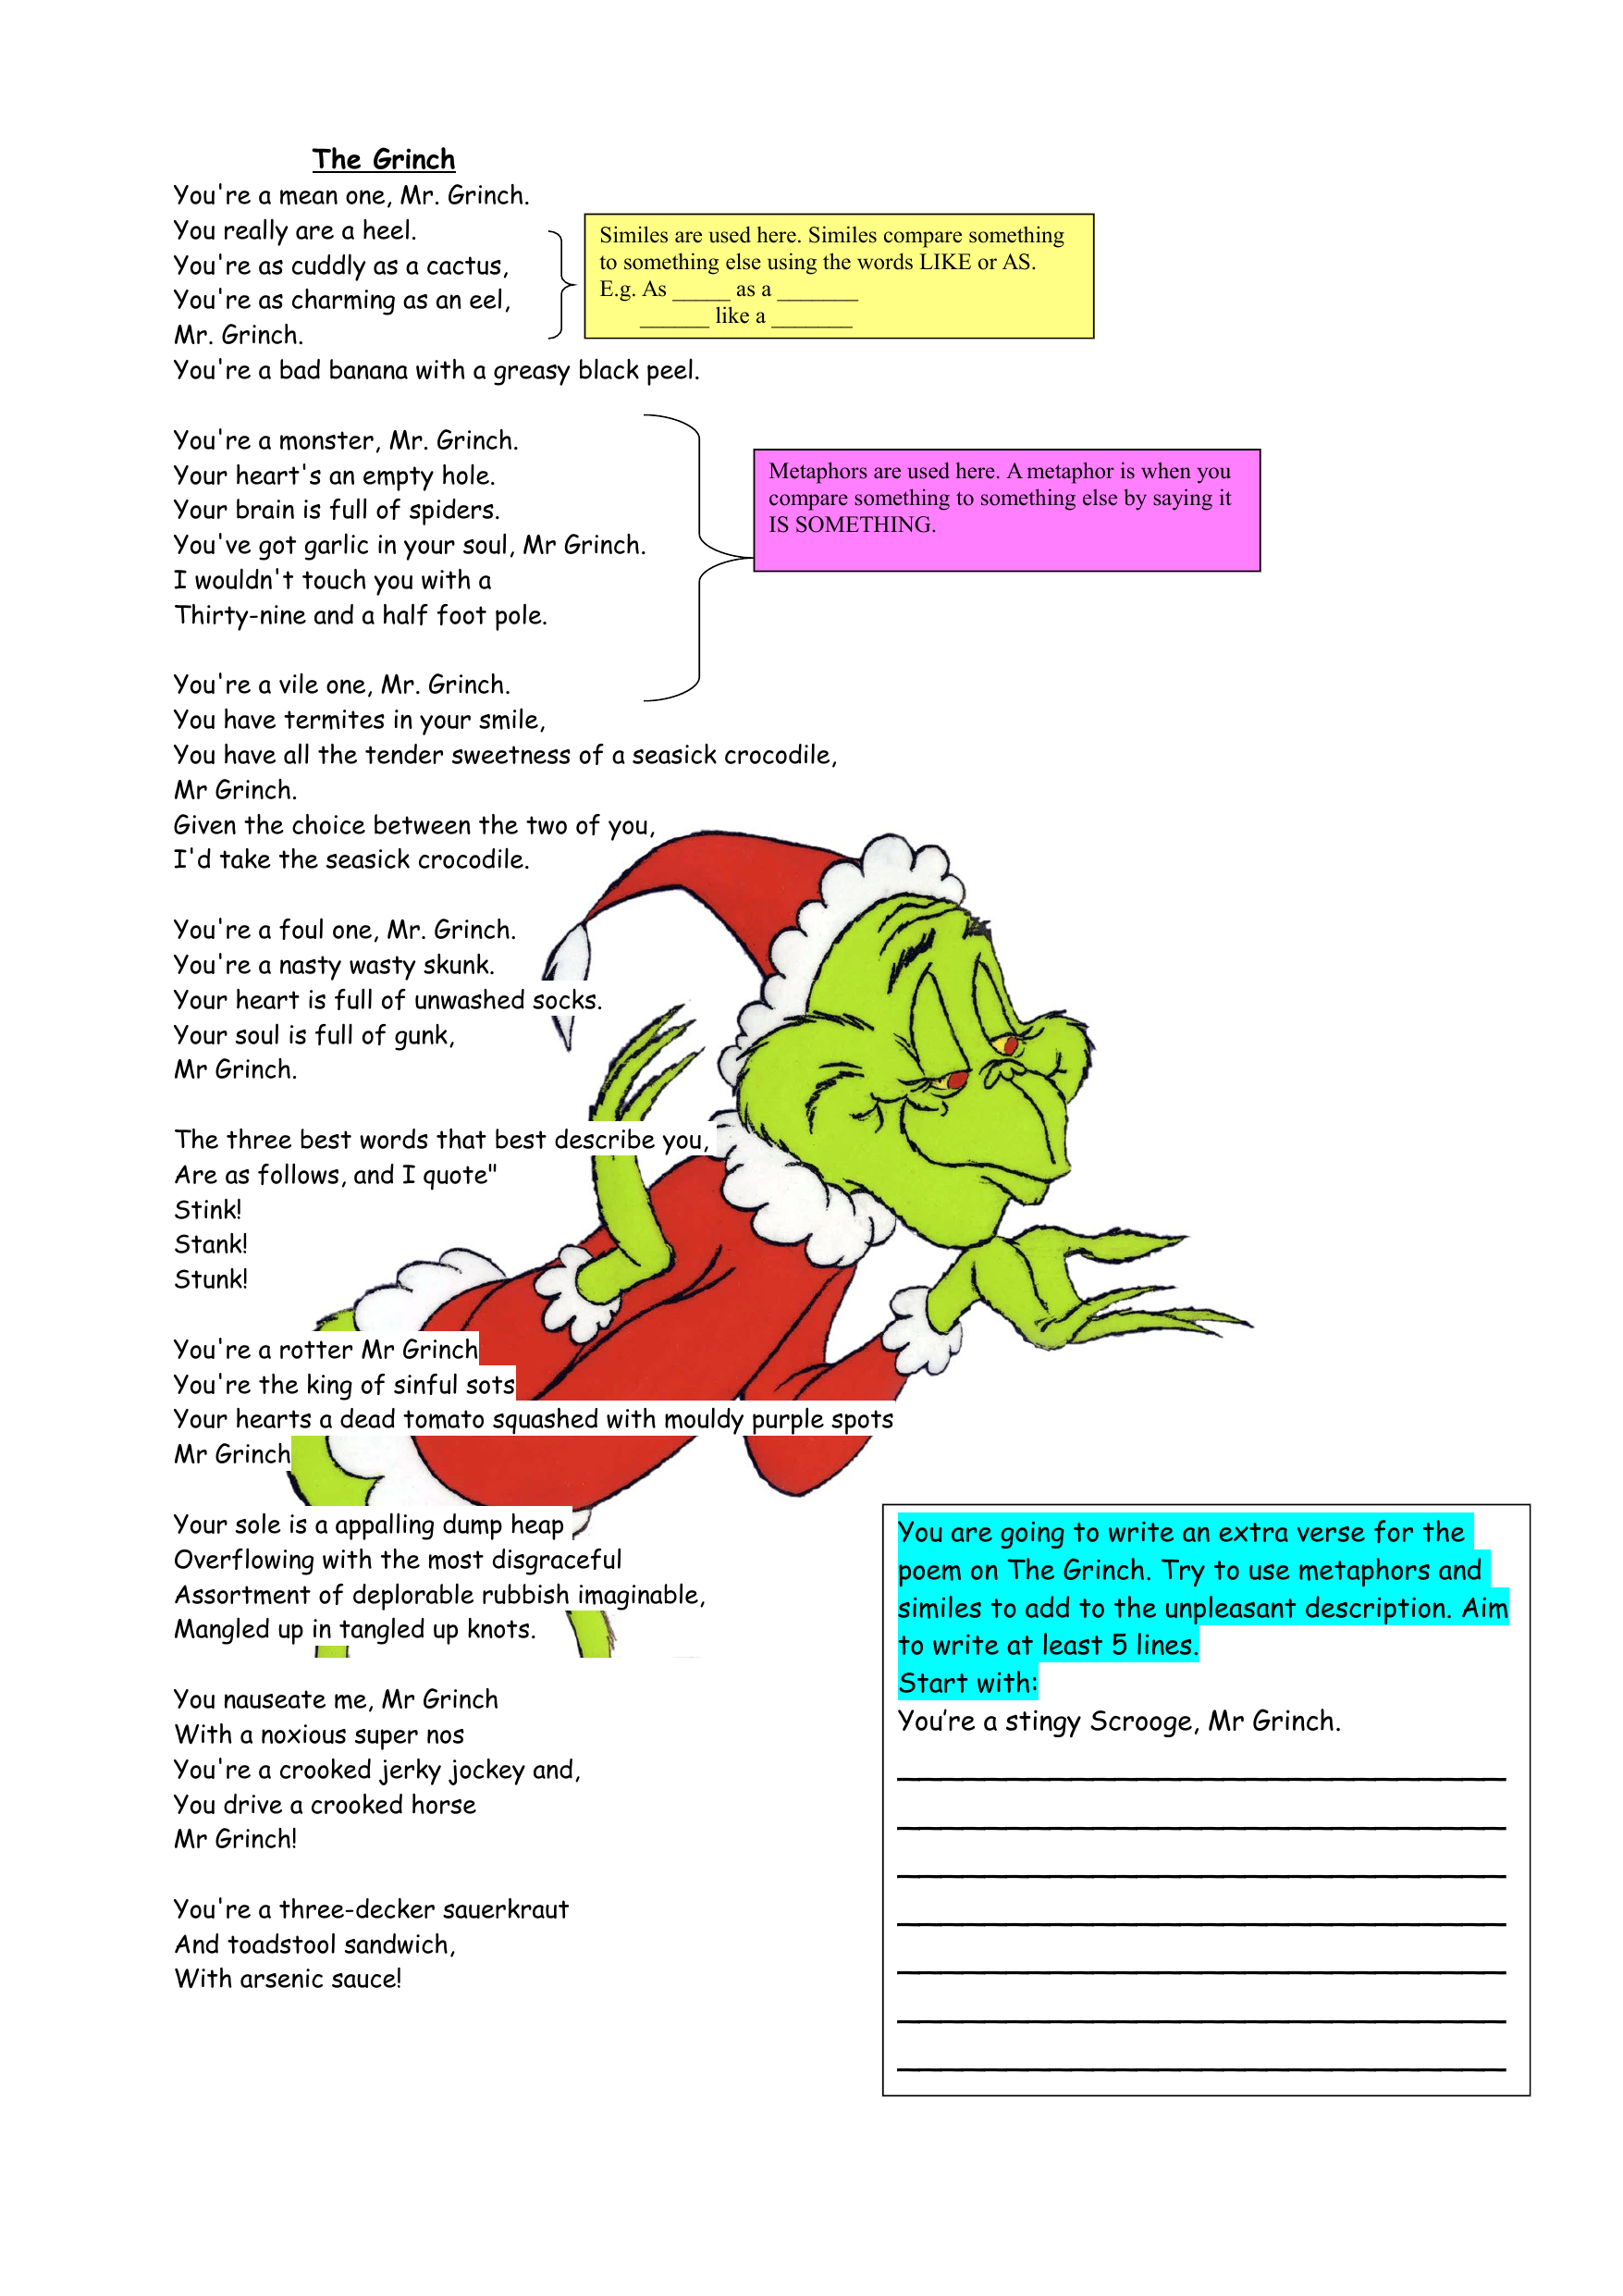 The Grinch Christmas Poetry Lesson By Ndavidson91